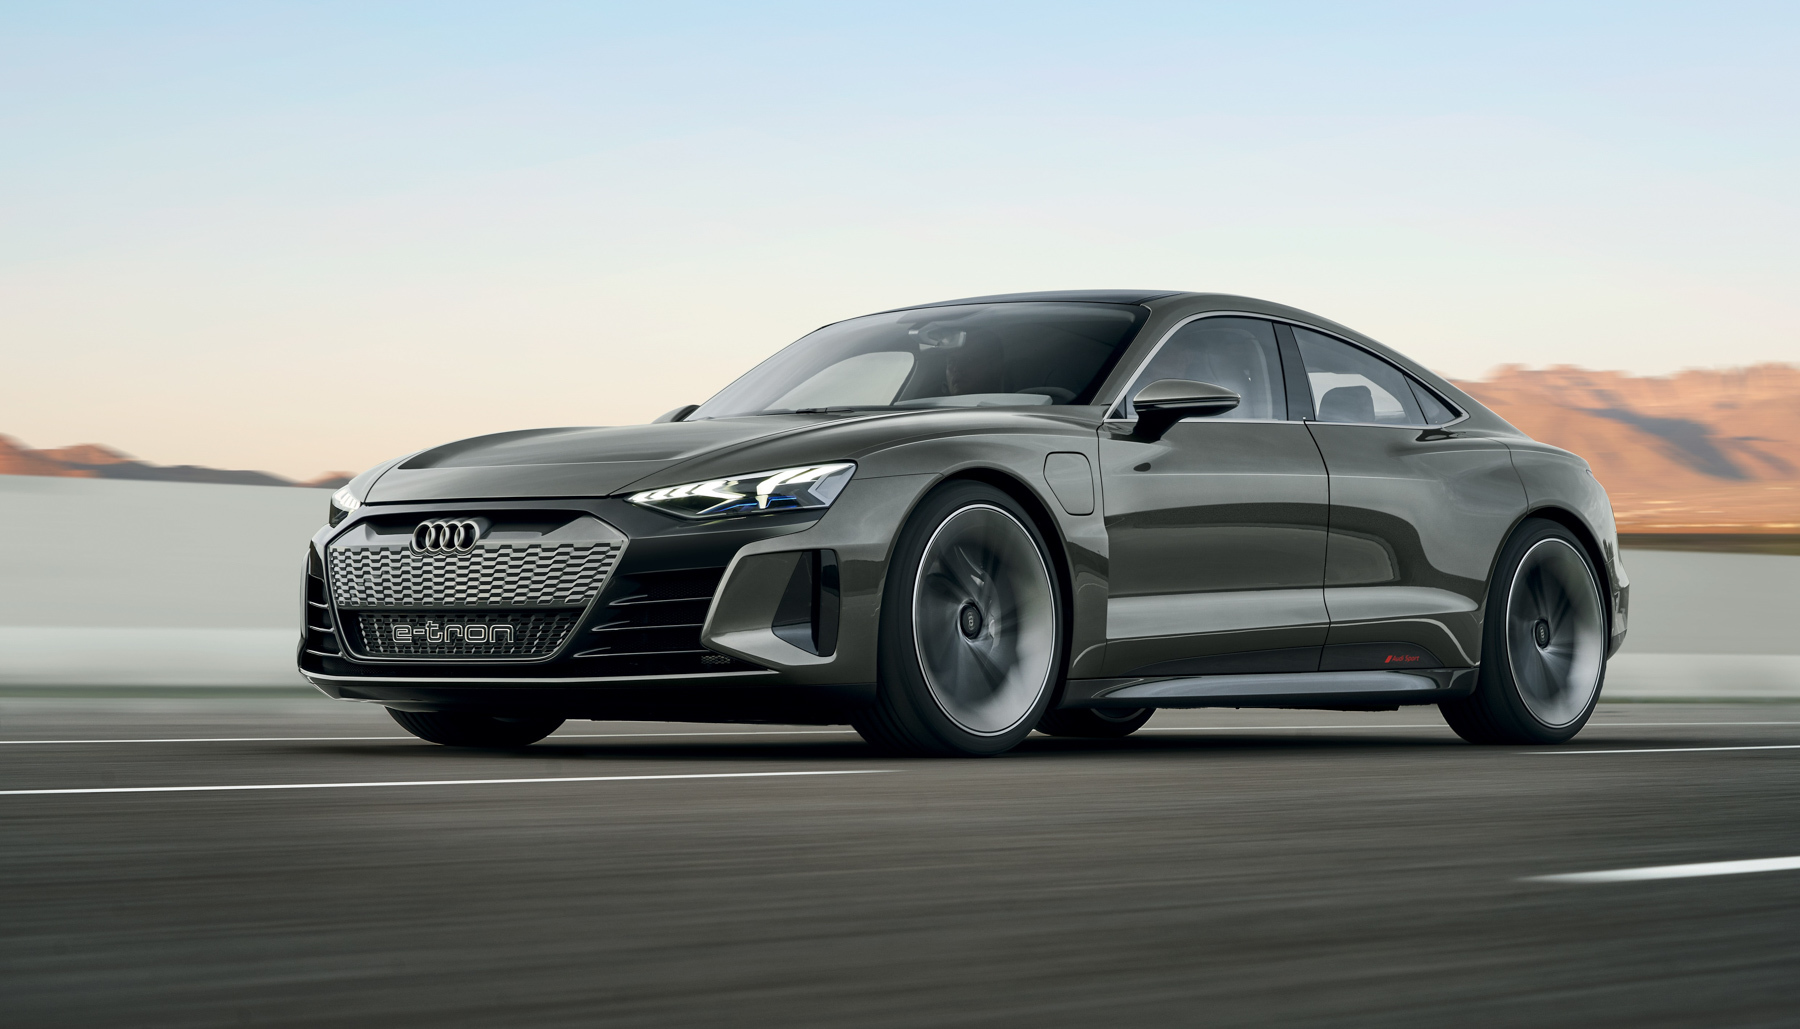 Audi's E-Tron GT Concept, a 590-Horsepower Electric Sedan with Power from Porsche 18